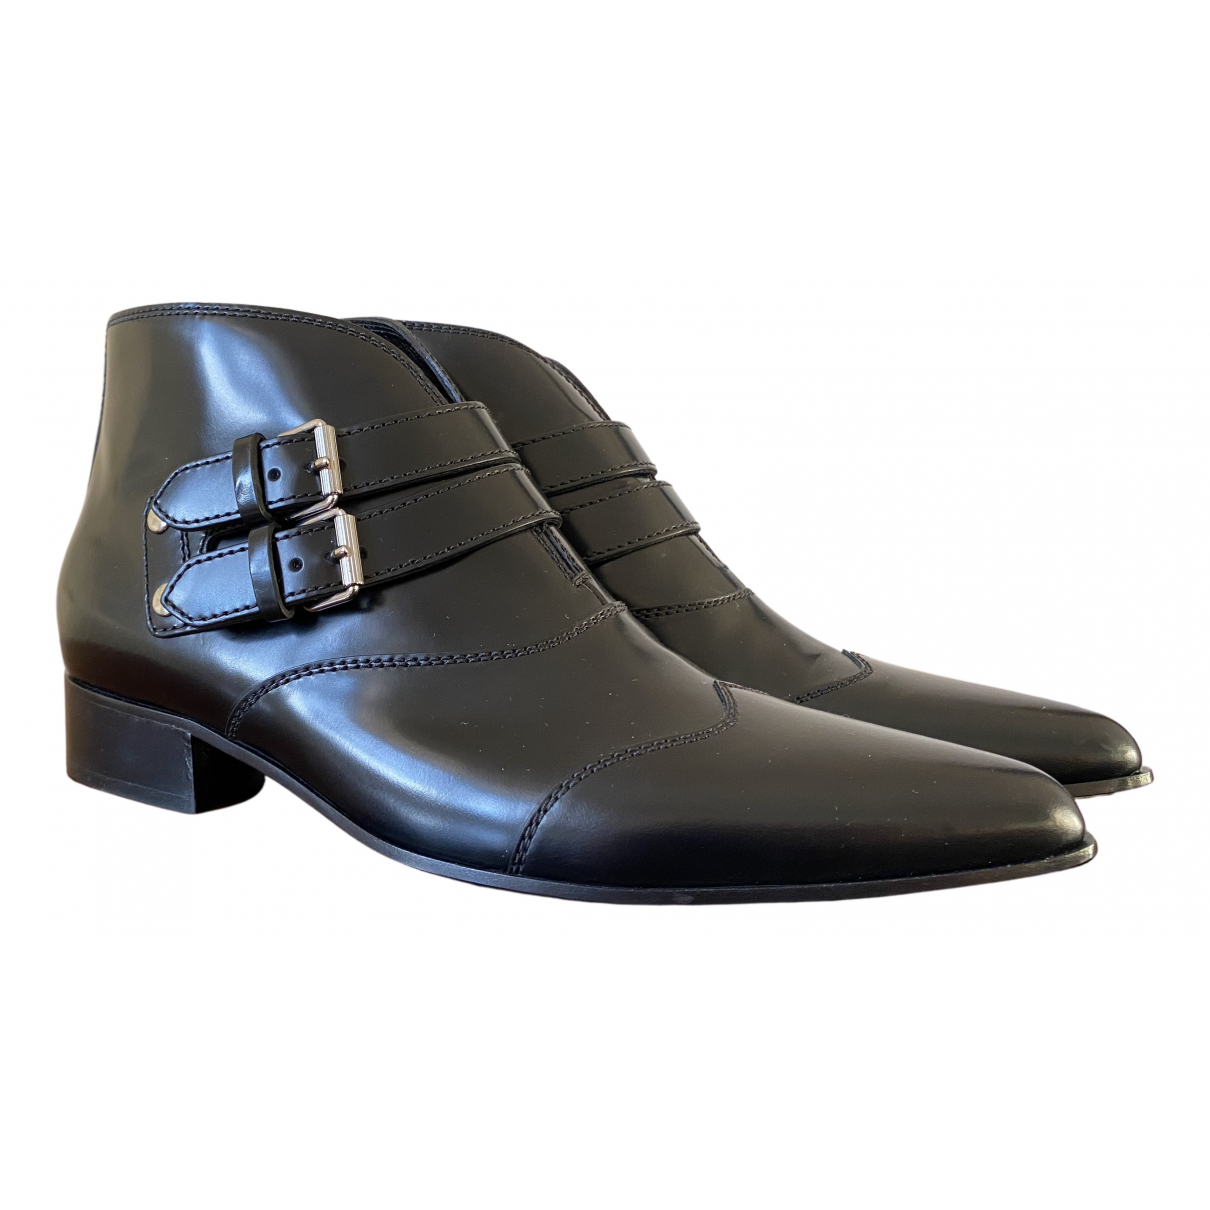 Givenchy N Black Leather Ankle boots for Women 39 EU